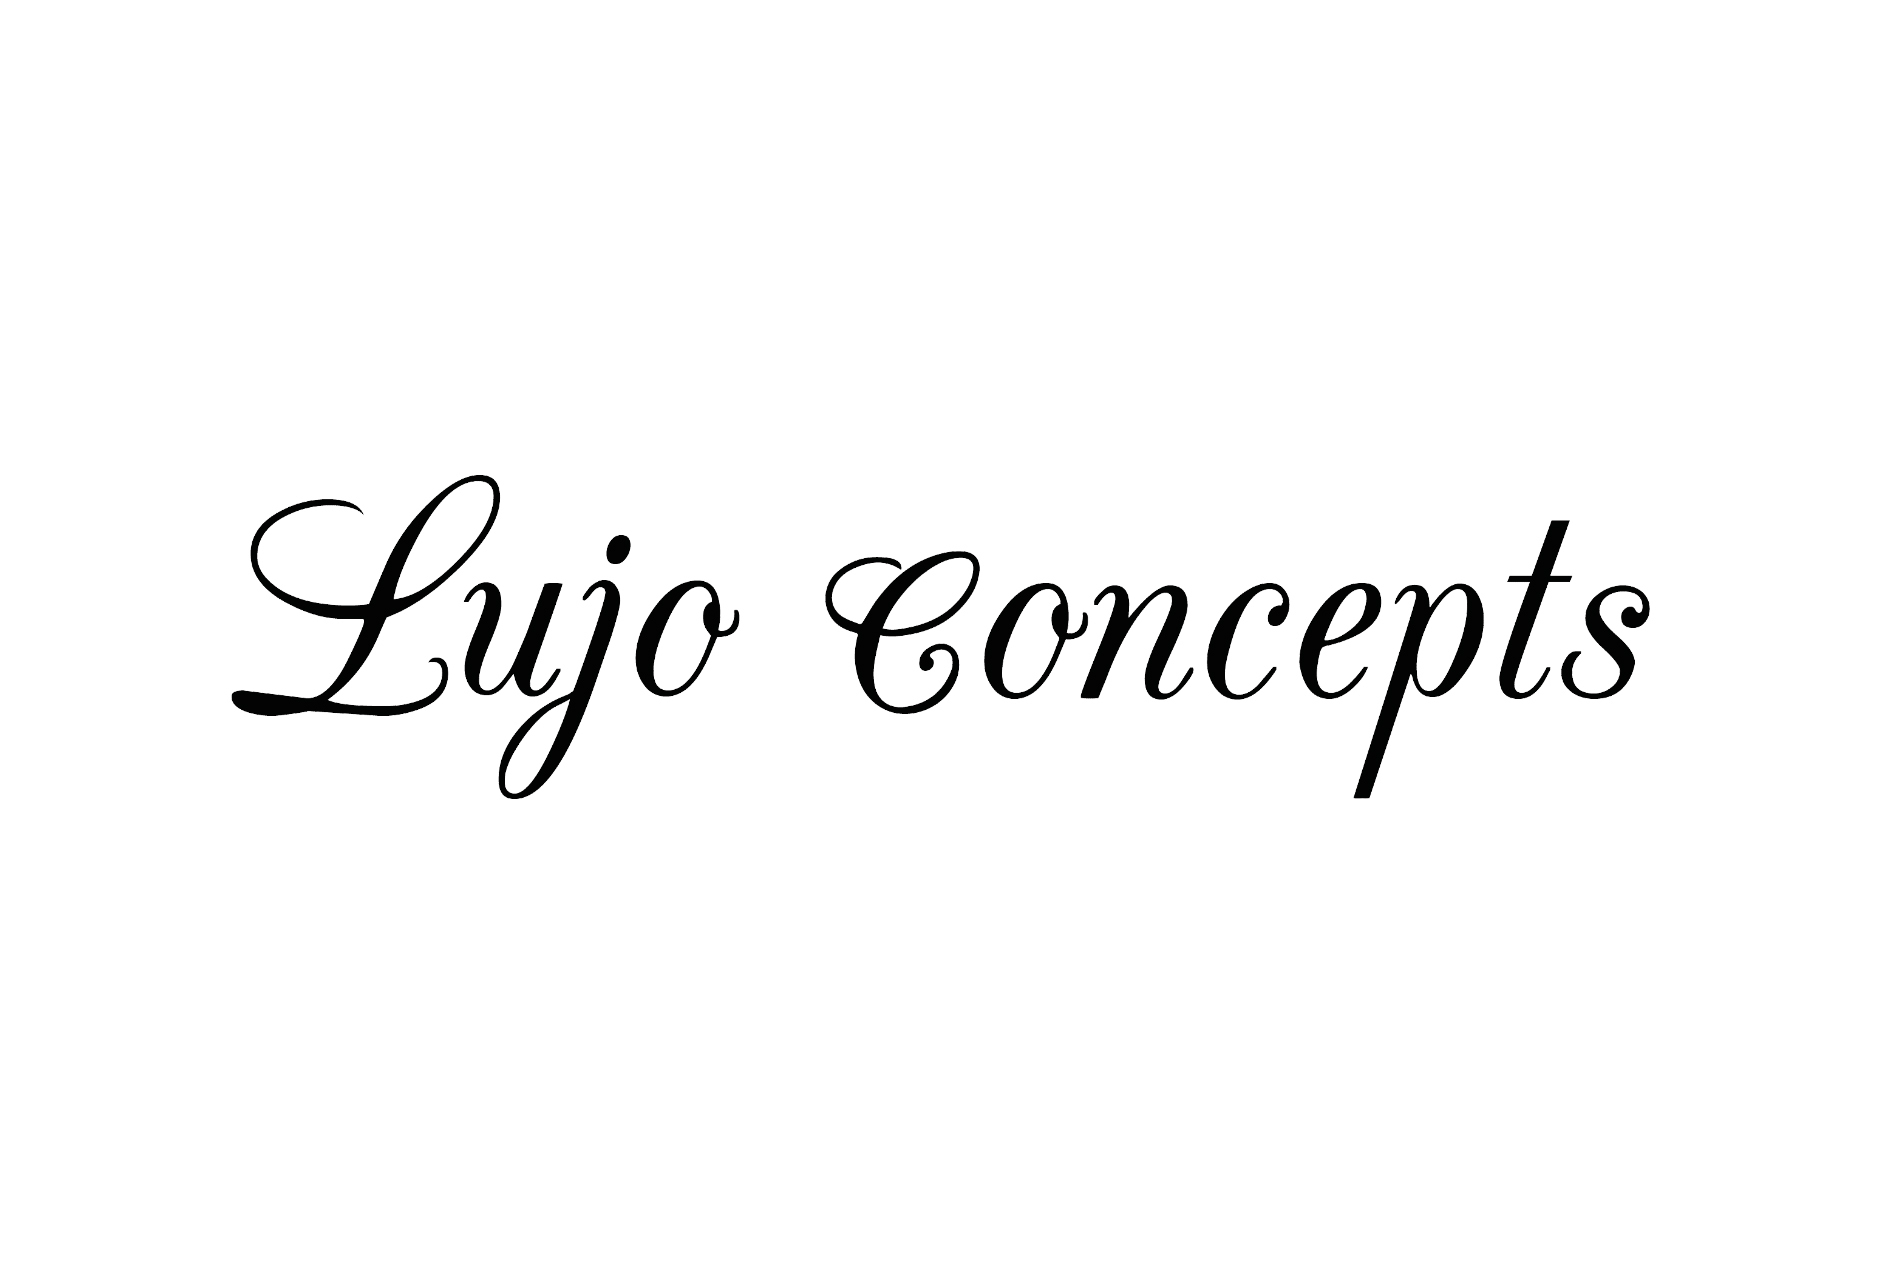 Lujo Concepts Debuts with BTX Cigar Cutter (Update